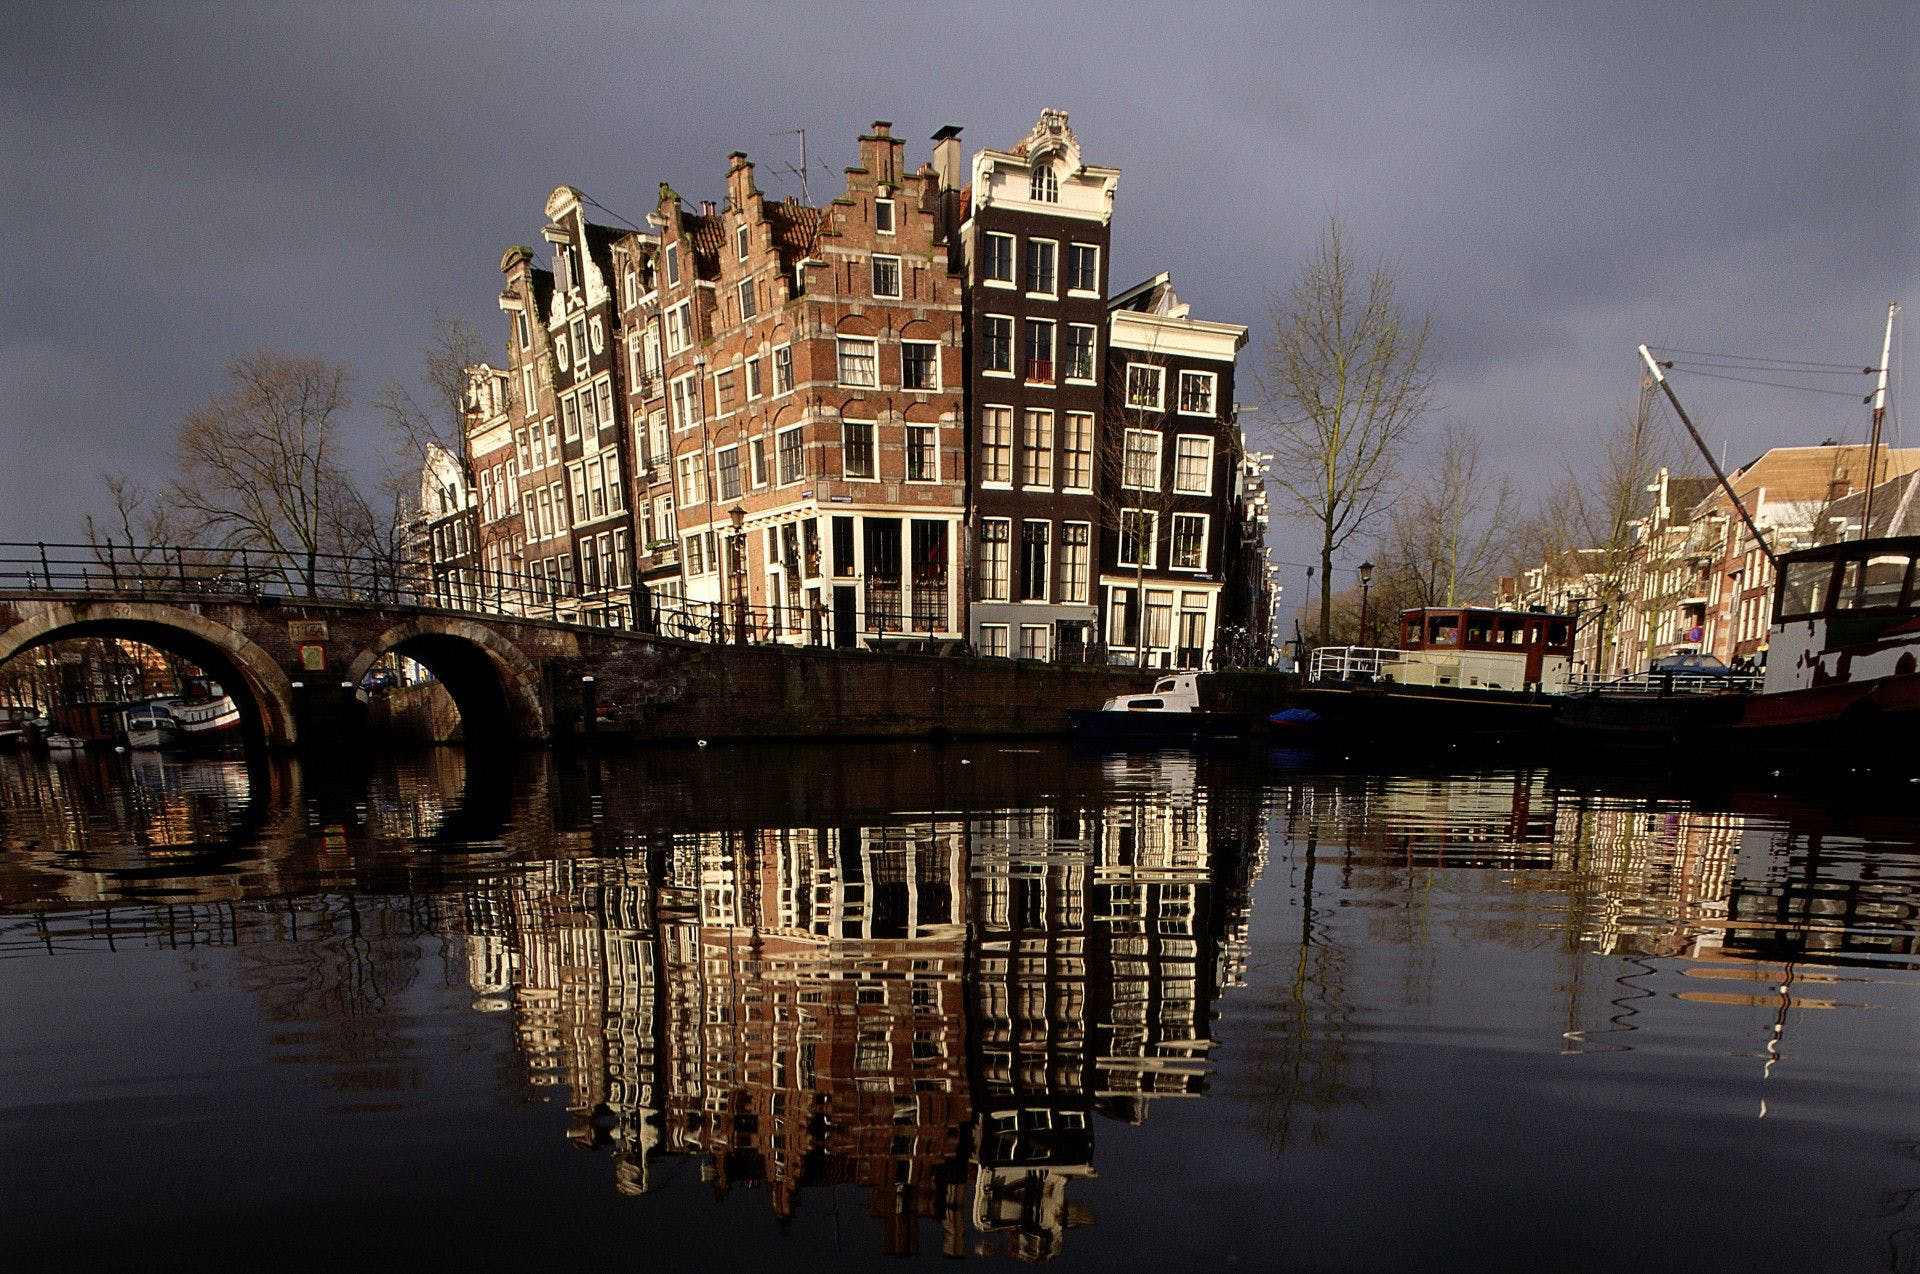 Historic houses on canal corner in Amsterdam